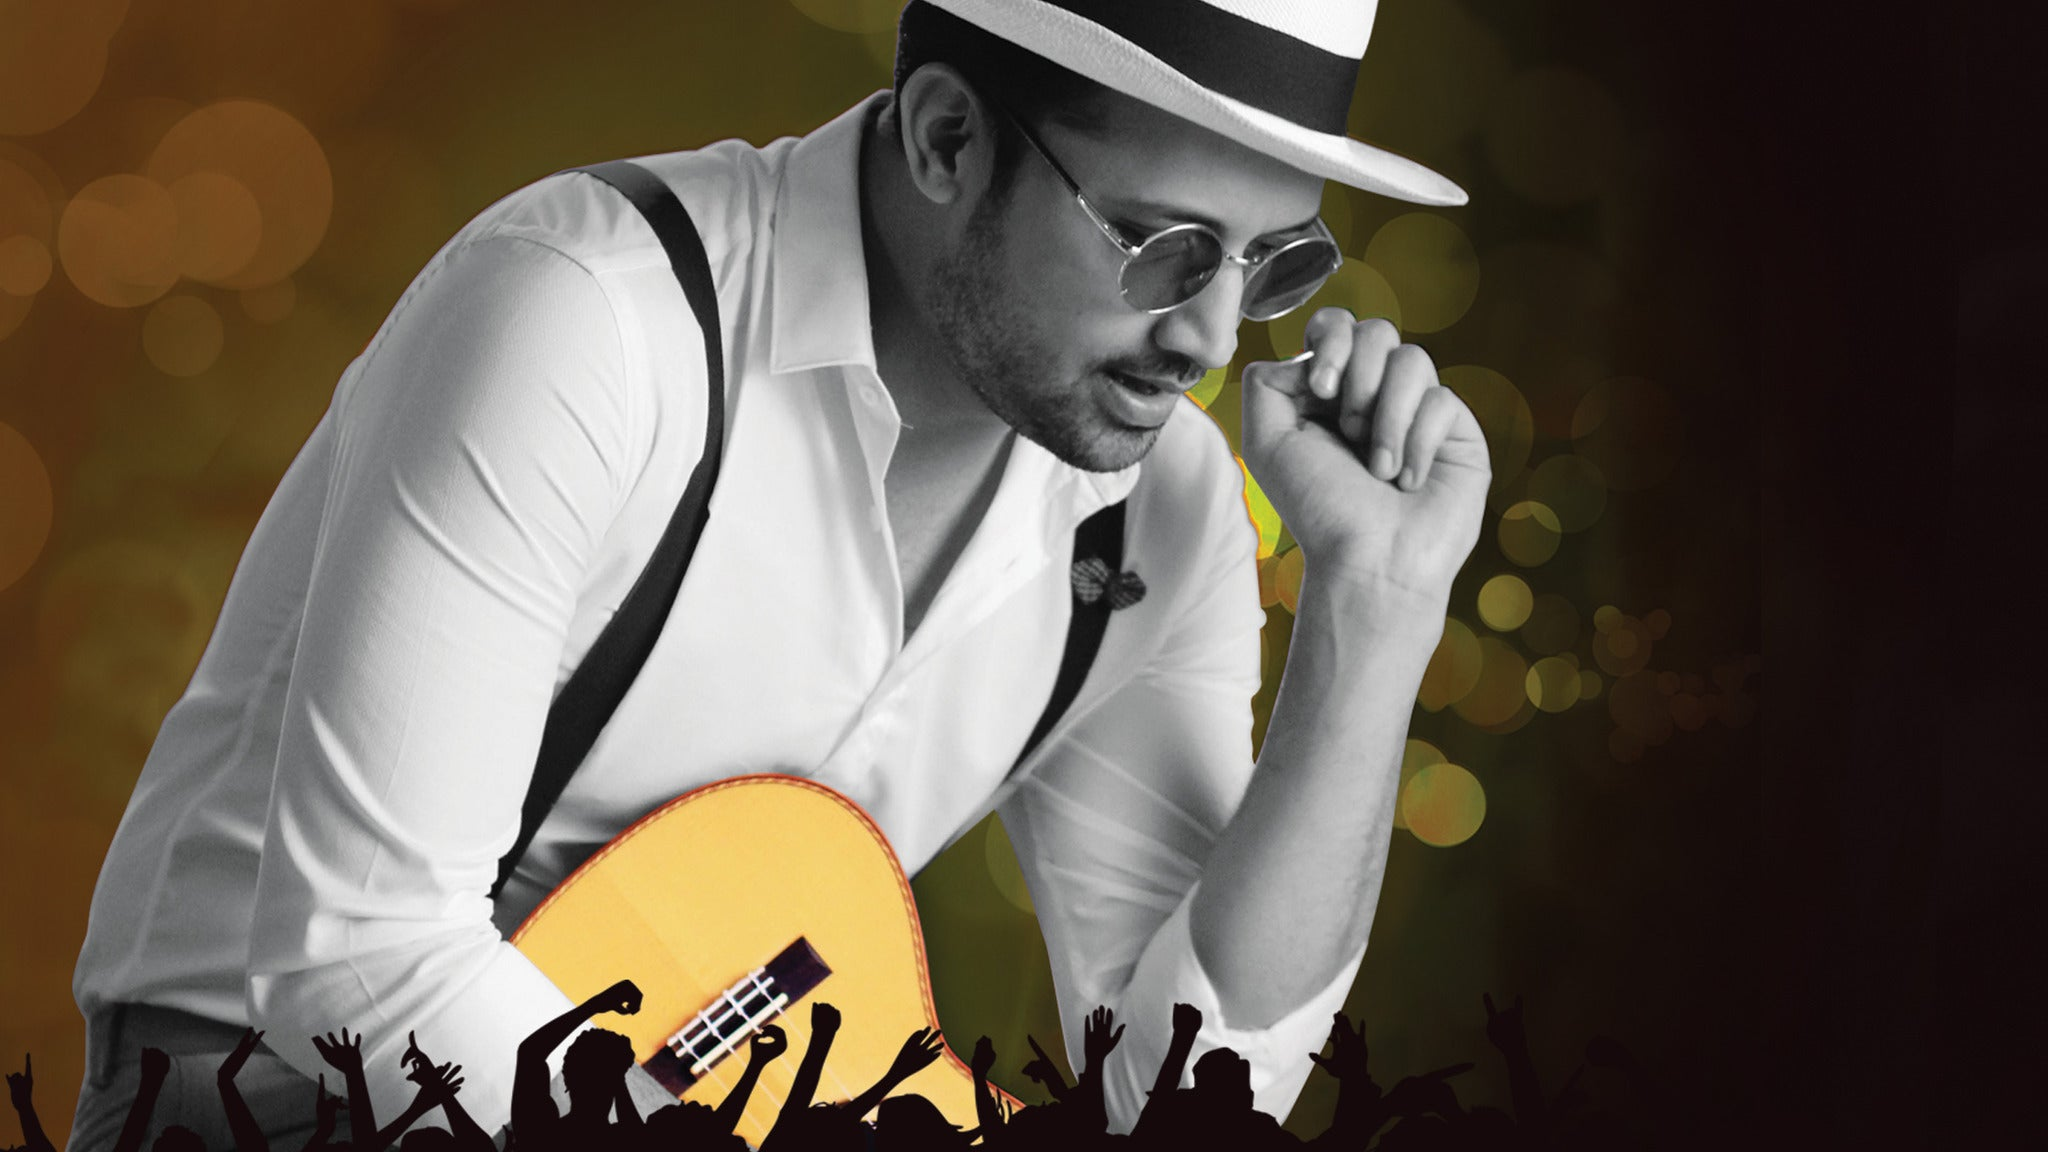 SORRY, THIS EVENT IS NO LONGER ACTIVE<br>Atif Aslam at Warner Theatre - Washington, DC 20004